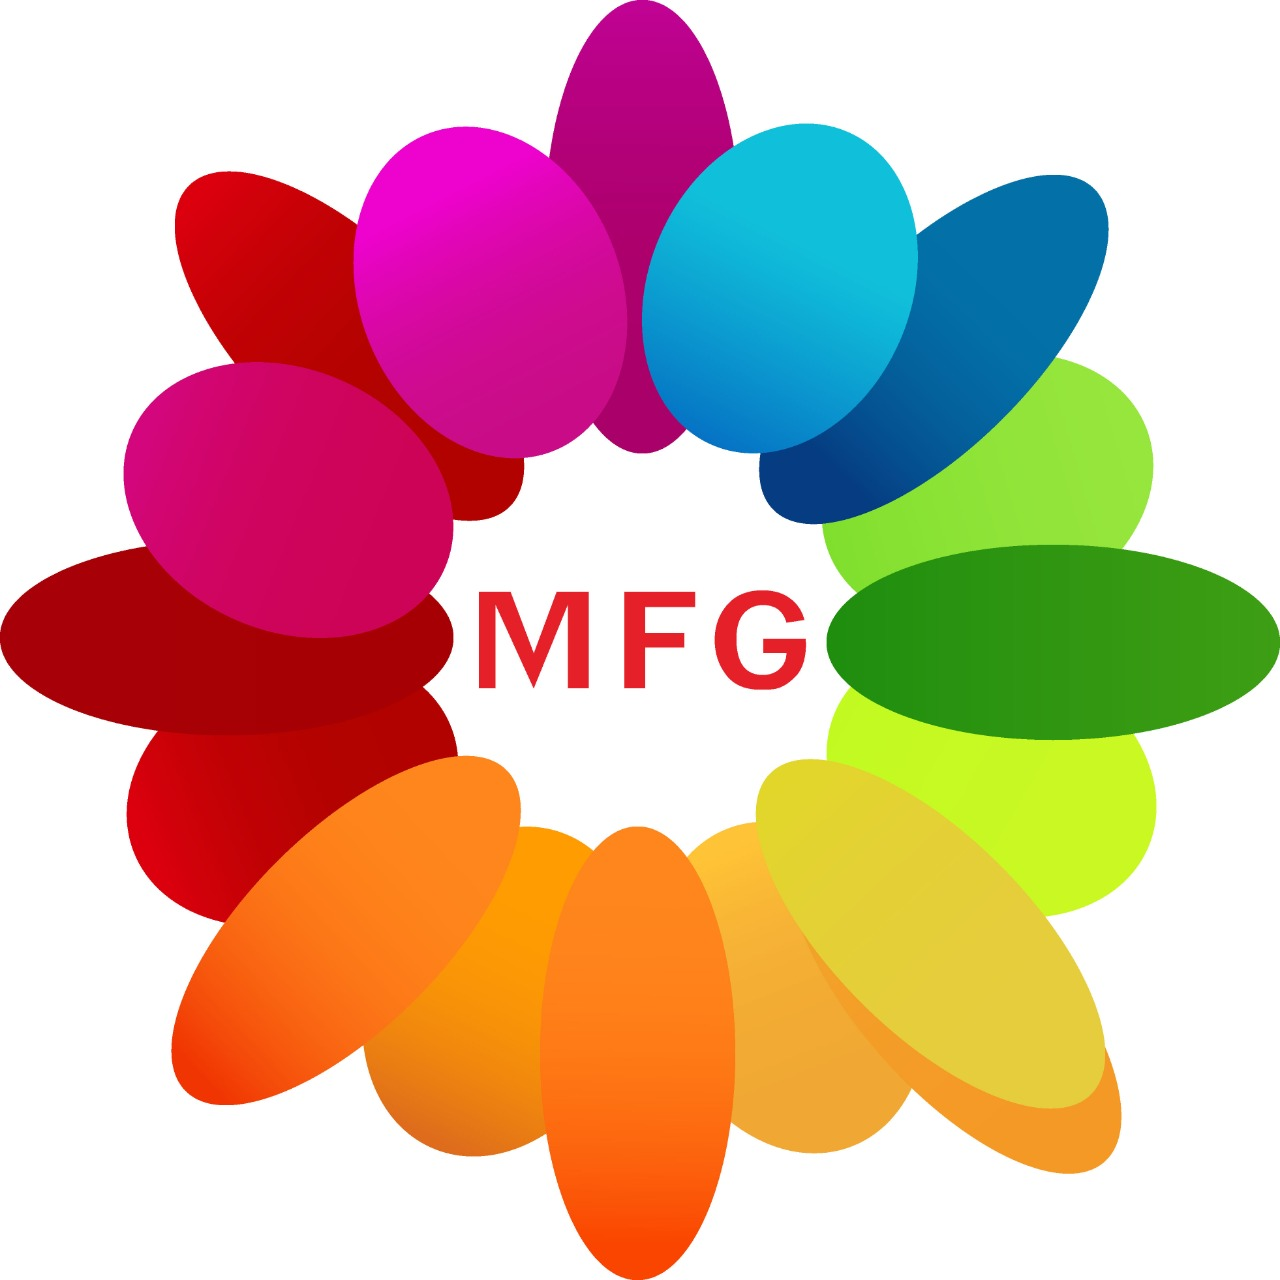 Bunch of red carnation with white lilies with 1 kg heart shape chocolate truffle cake with bottle of wine